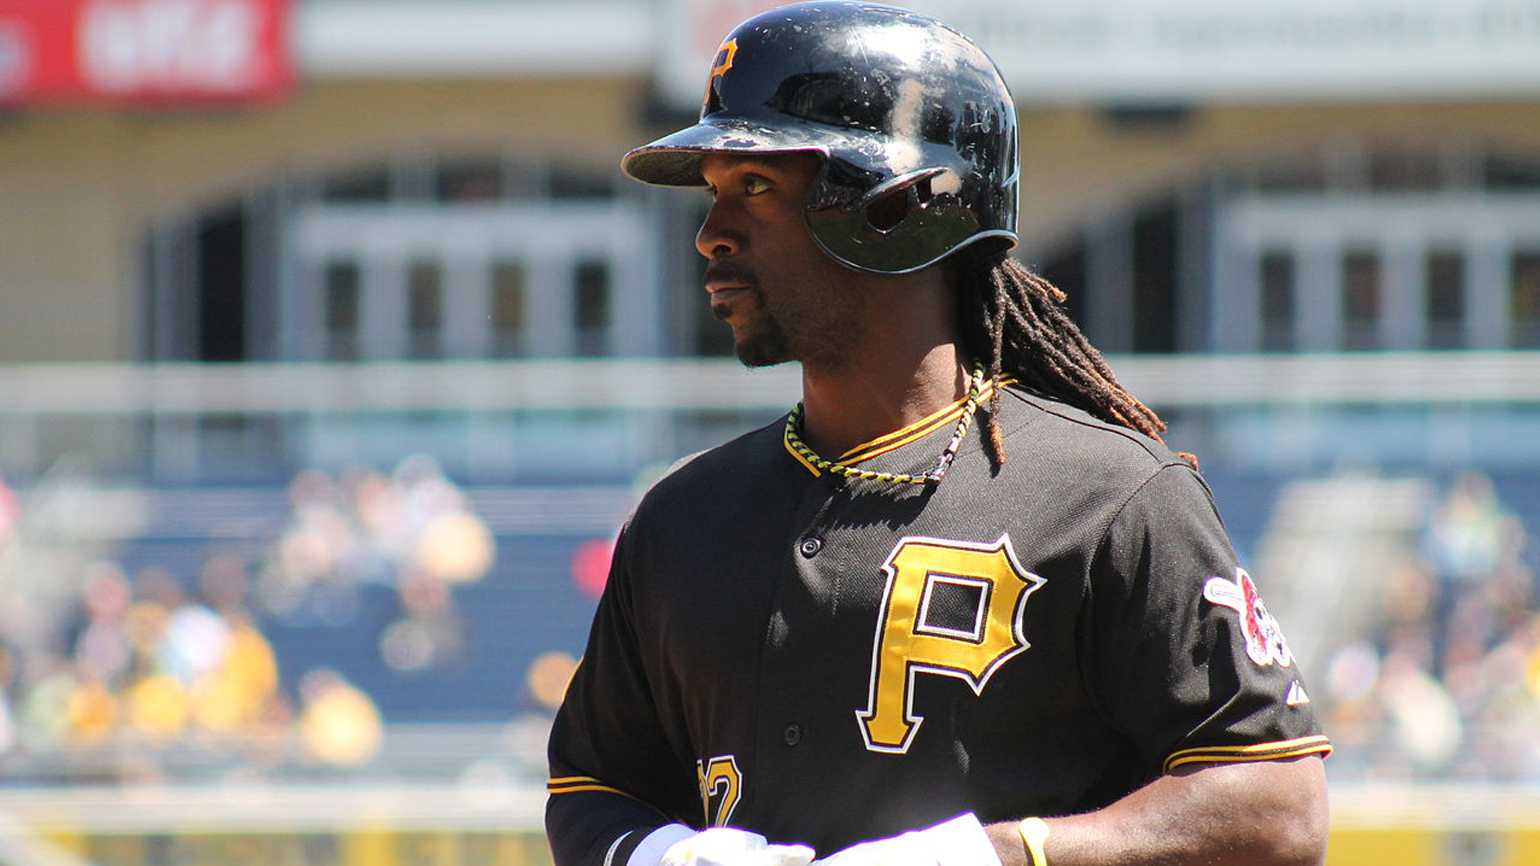 Andrew McCutchen; Photo credit: Wikimedia Commons